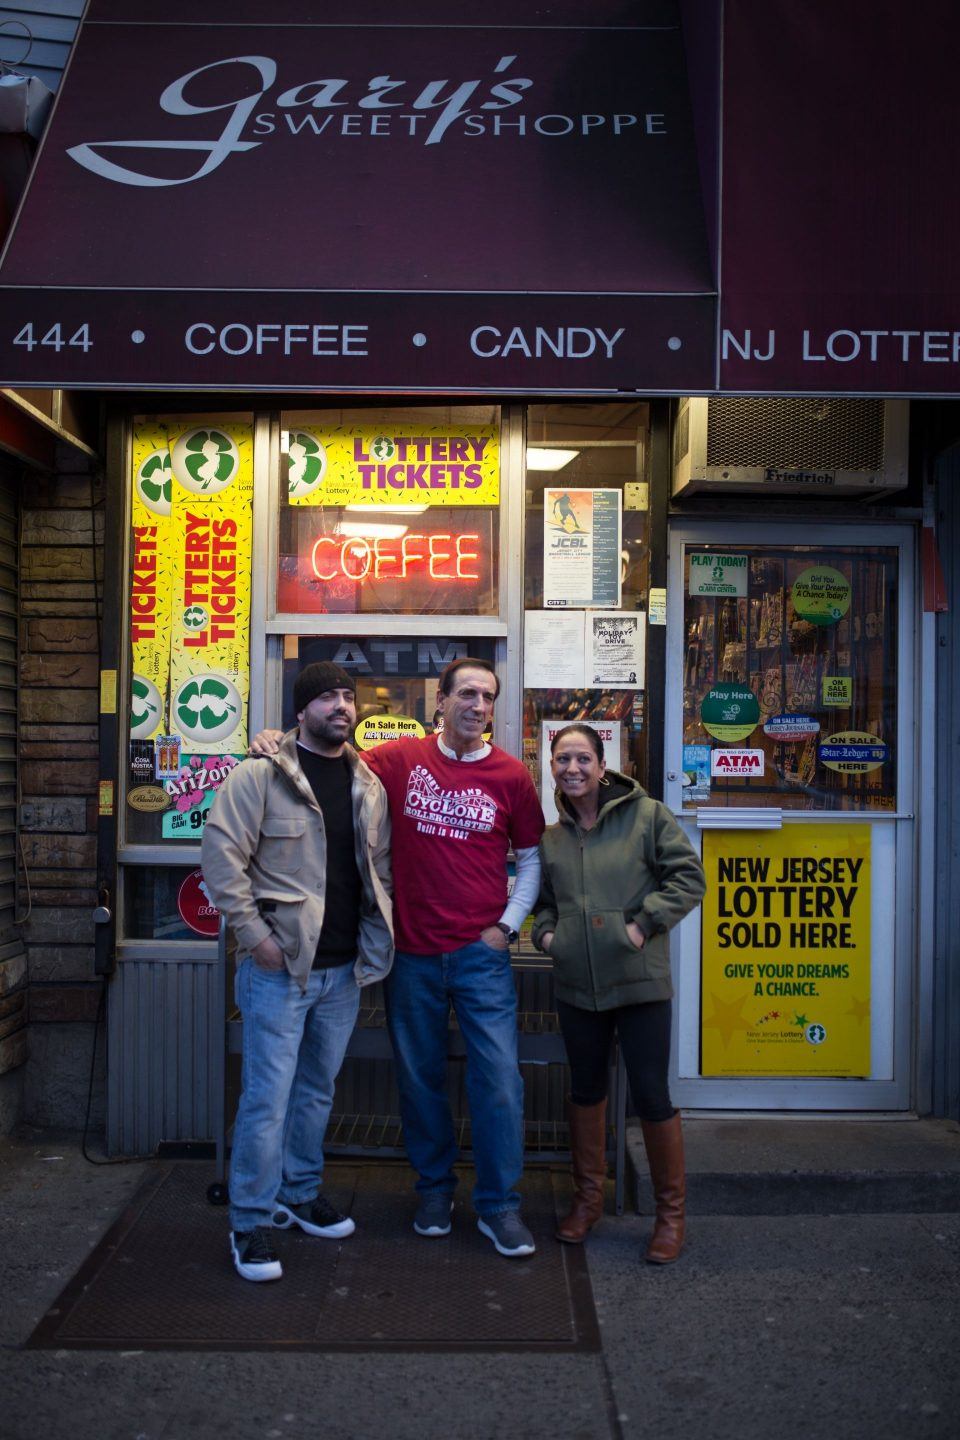 Gary's Sweet Shoppe in Jersey City